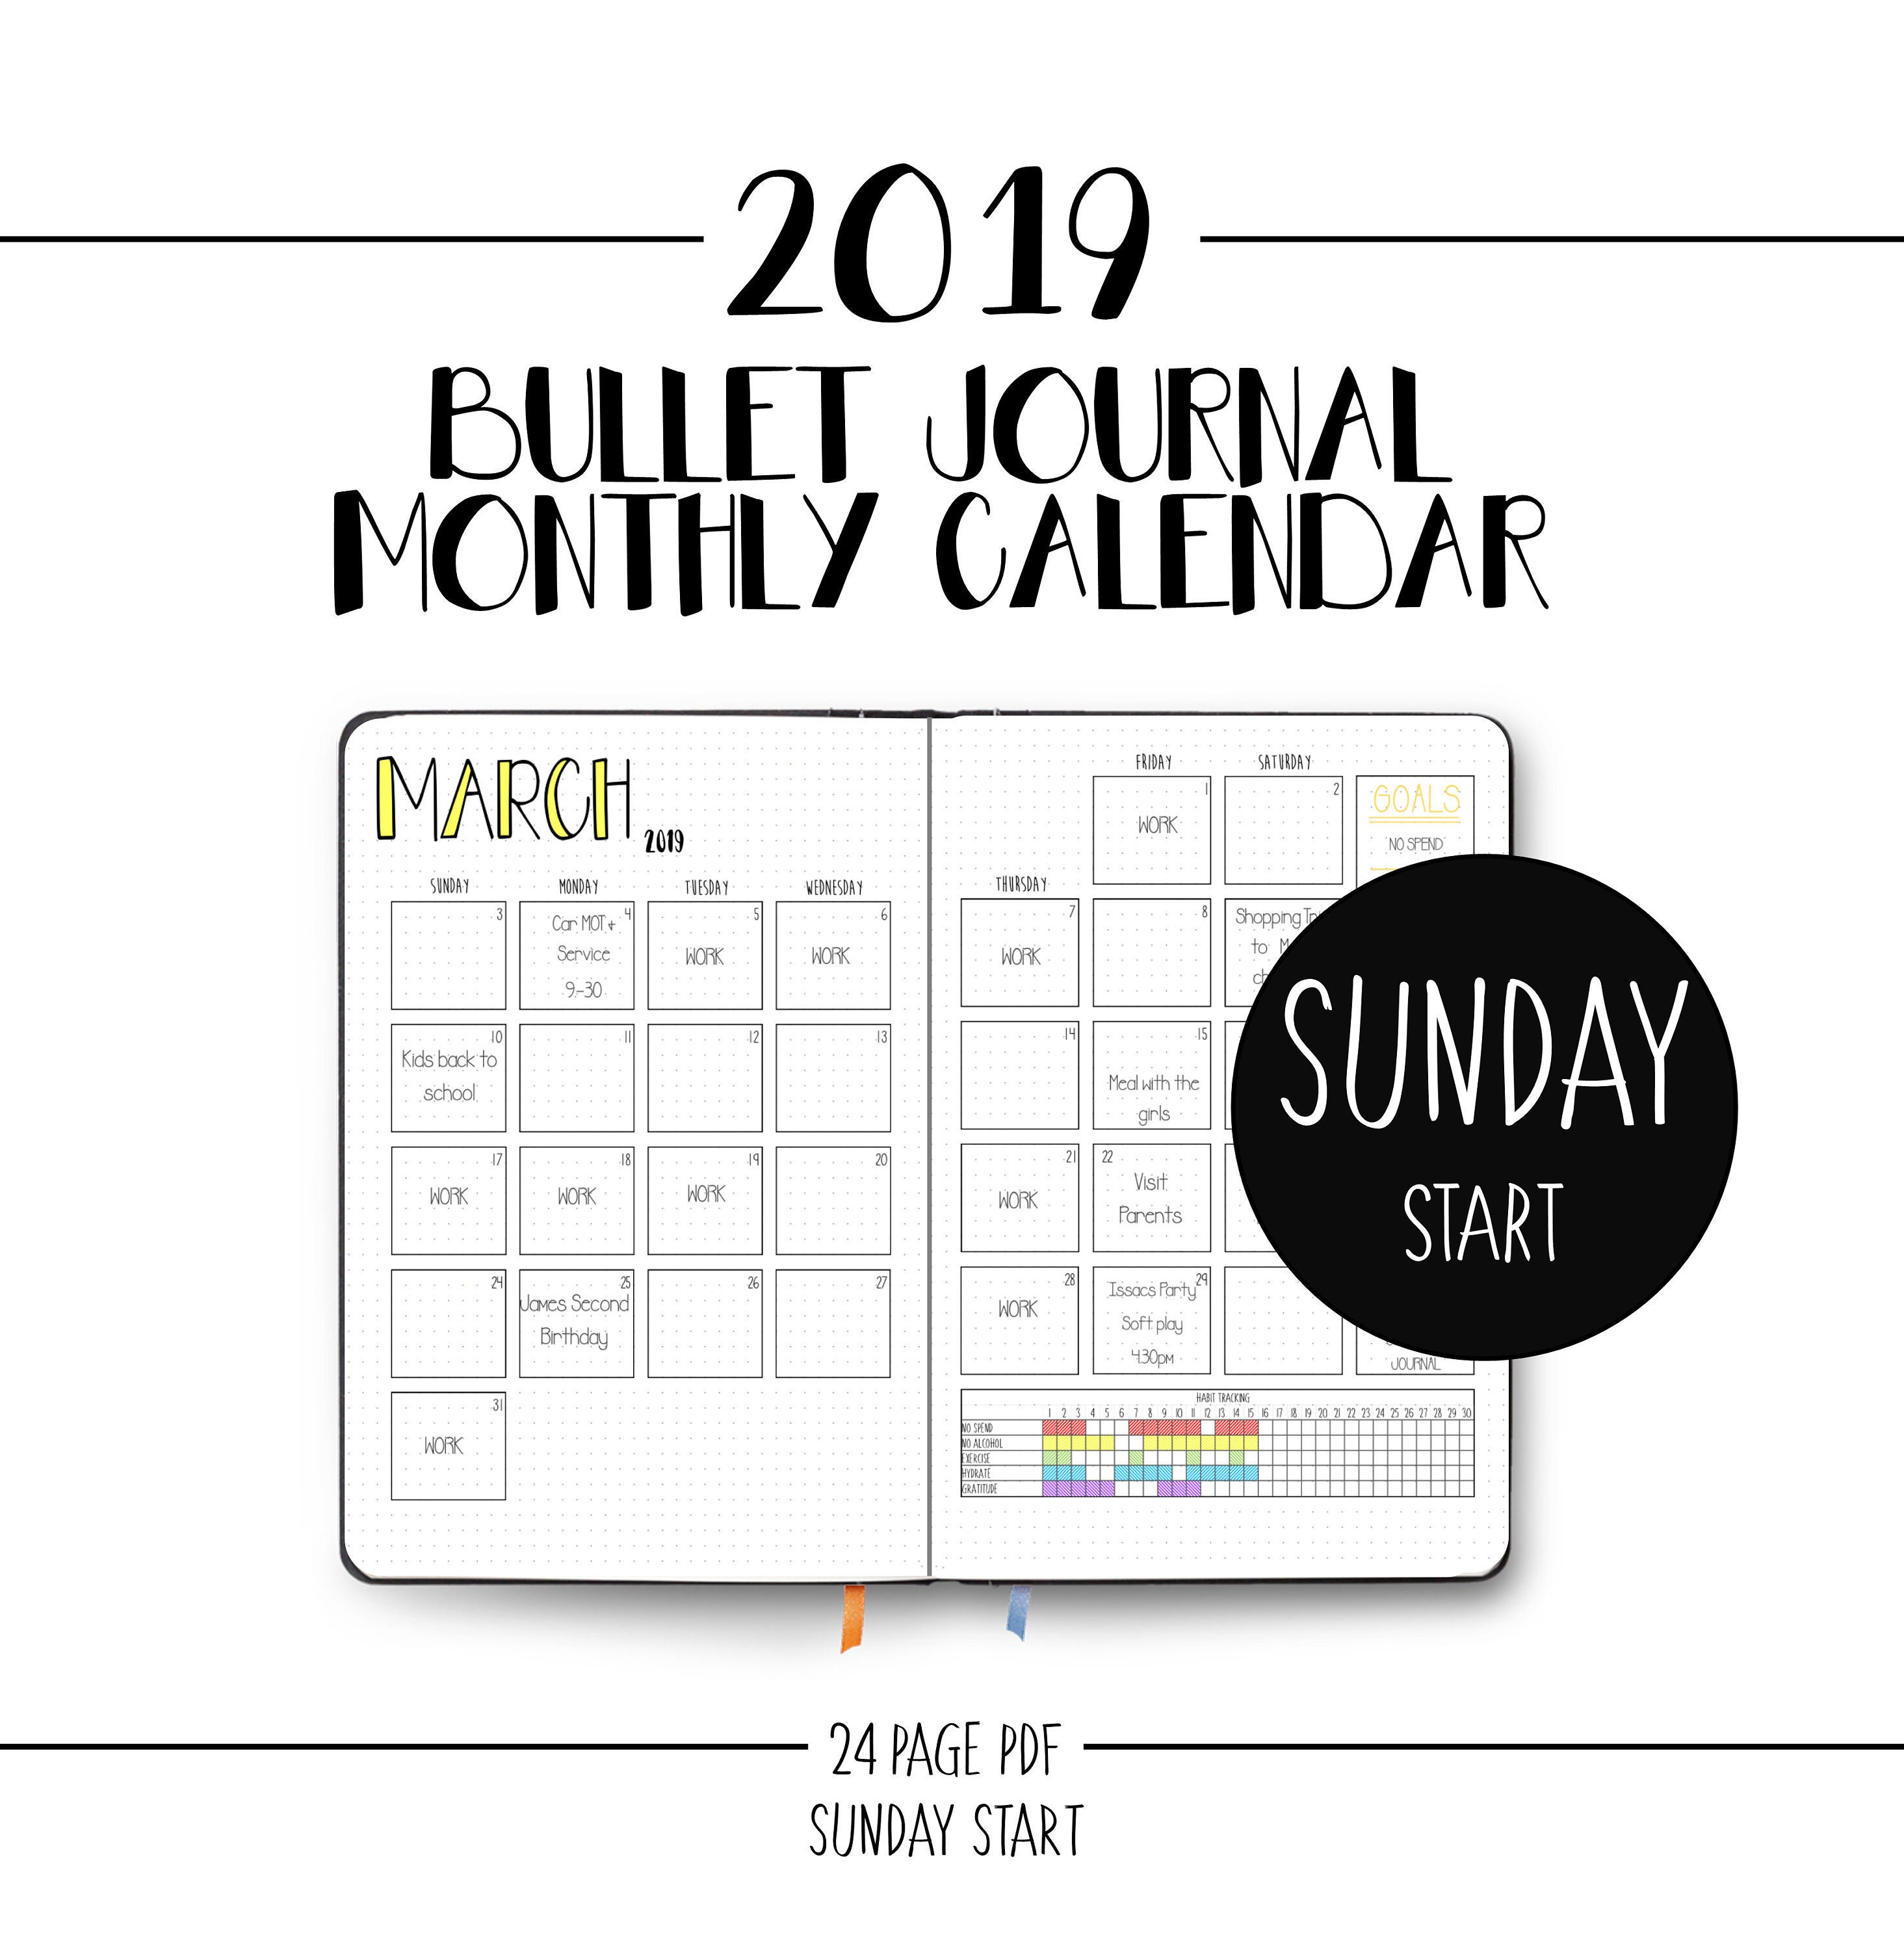 picture relating to Monthly Planner Template identify 2019 Calendar Bullet Magazine - Sunday Start out - Month-to-month Planner - Template - Printable Down load